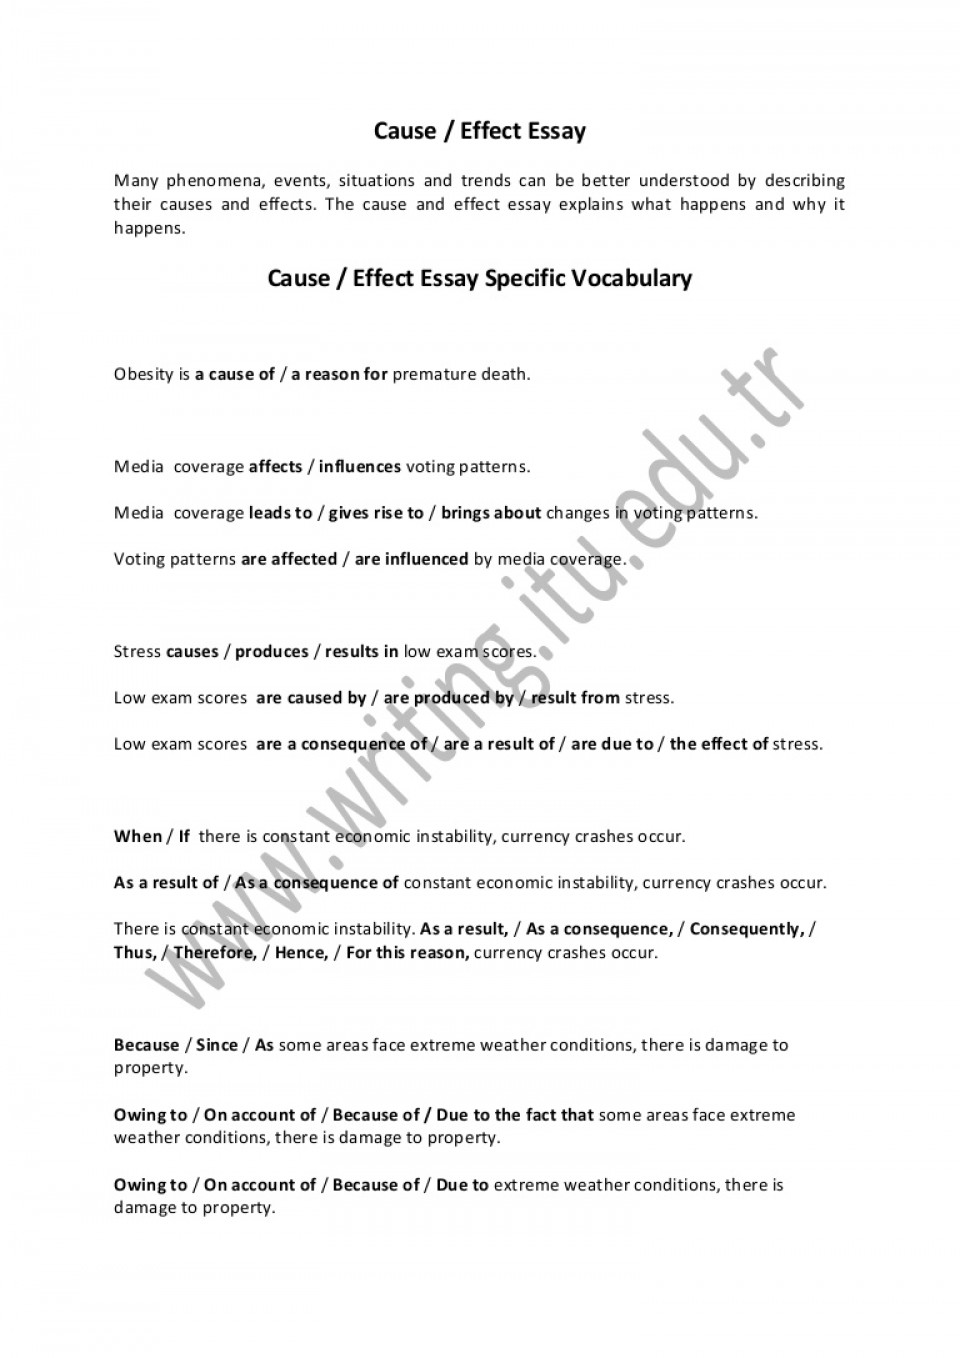 019 Essay Example Causeandeffectessay Thumbnail Cause And Effect Amazing Examples Pdf 4th Grade Divorce 960